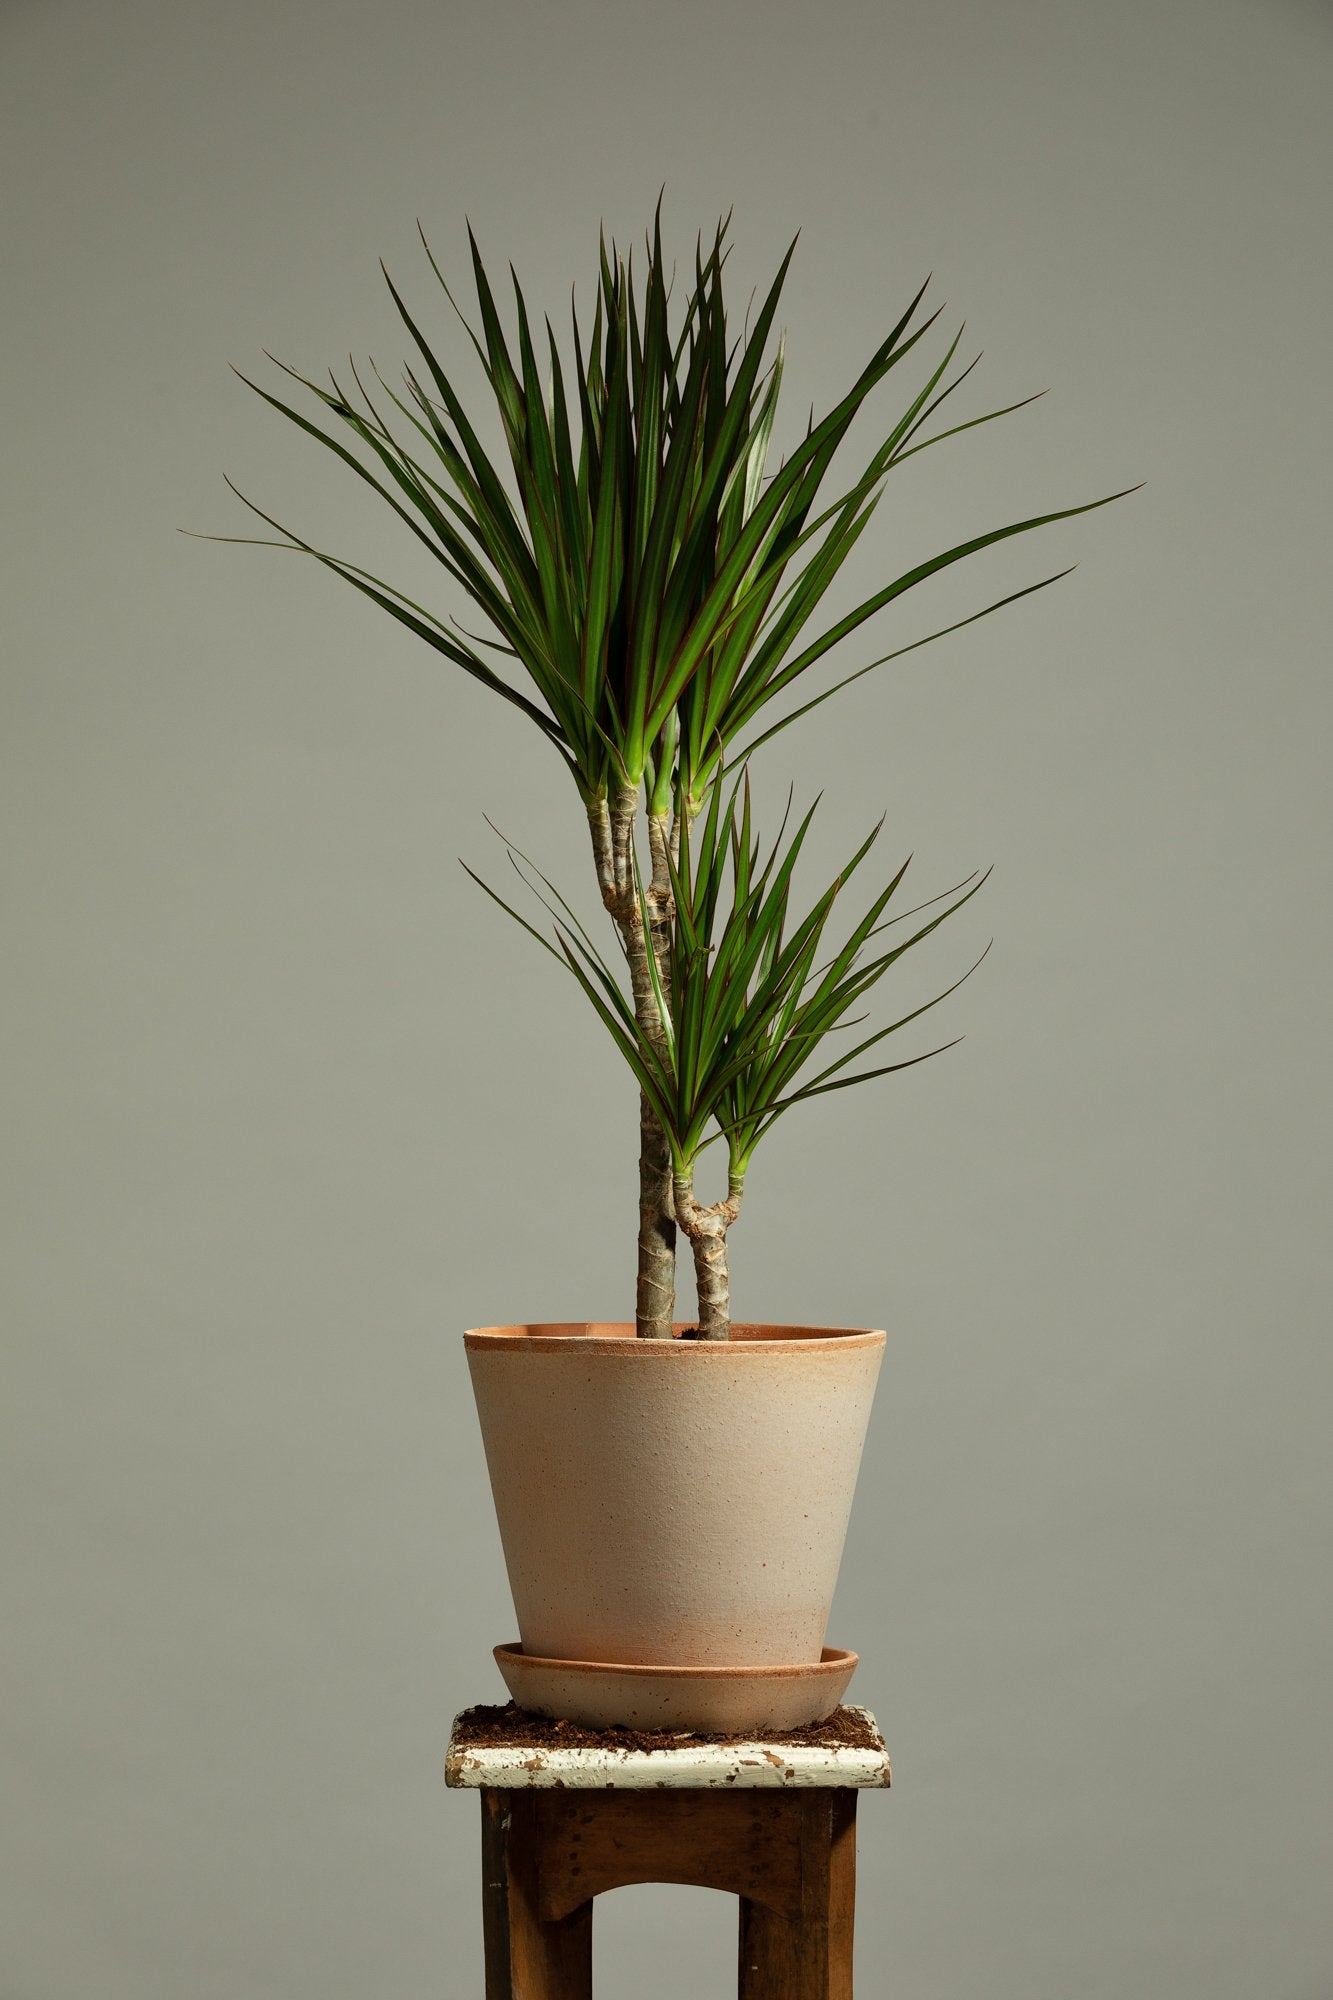 The Dracaena Marginata, or Dragon Tree, replanted in a handmade Berg's Julie Rosa indoor pot.